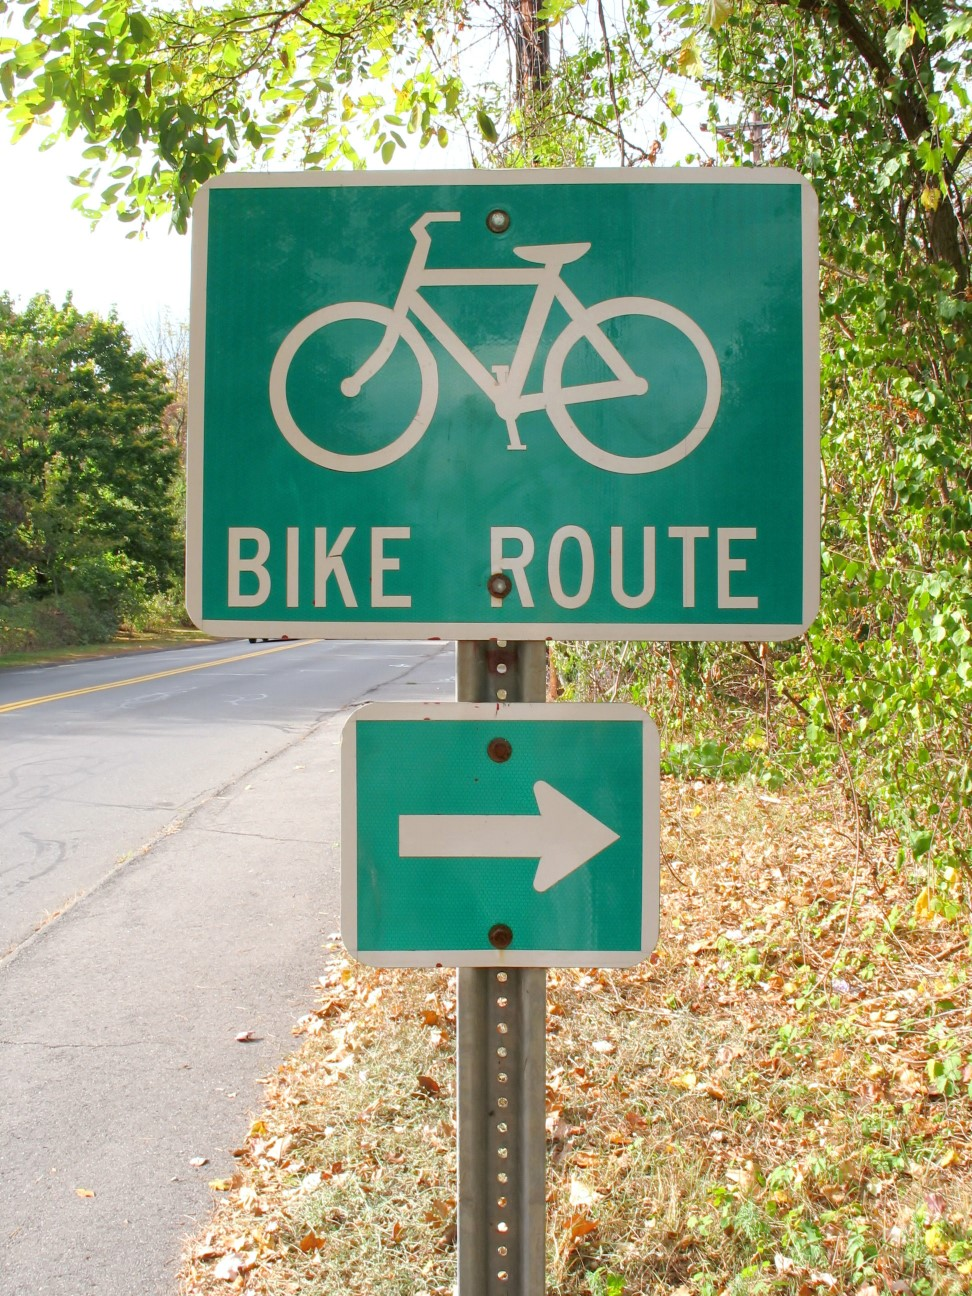 a-green-bike-route-sign-on-the-side-of-the-road_rFiqJd0ro-sm.jpg